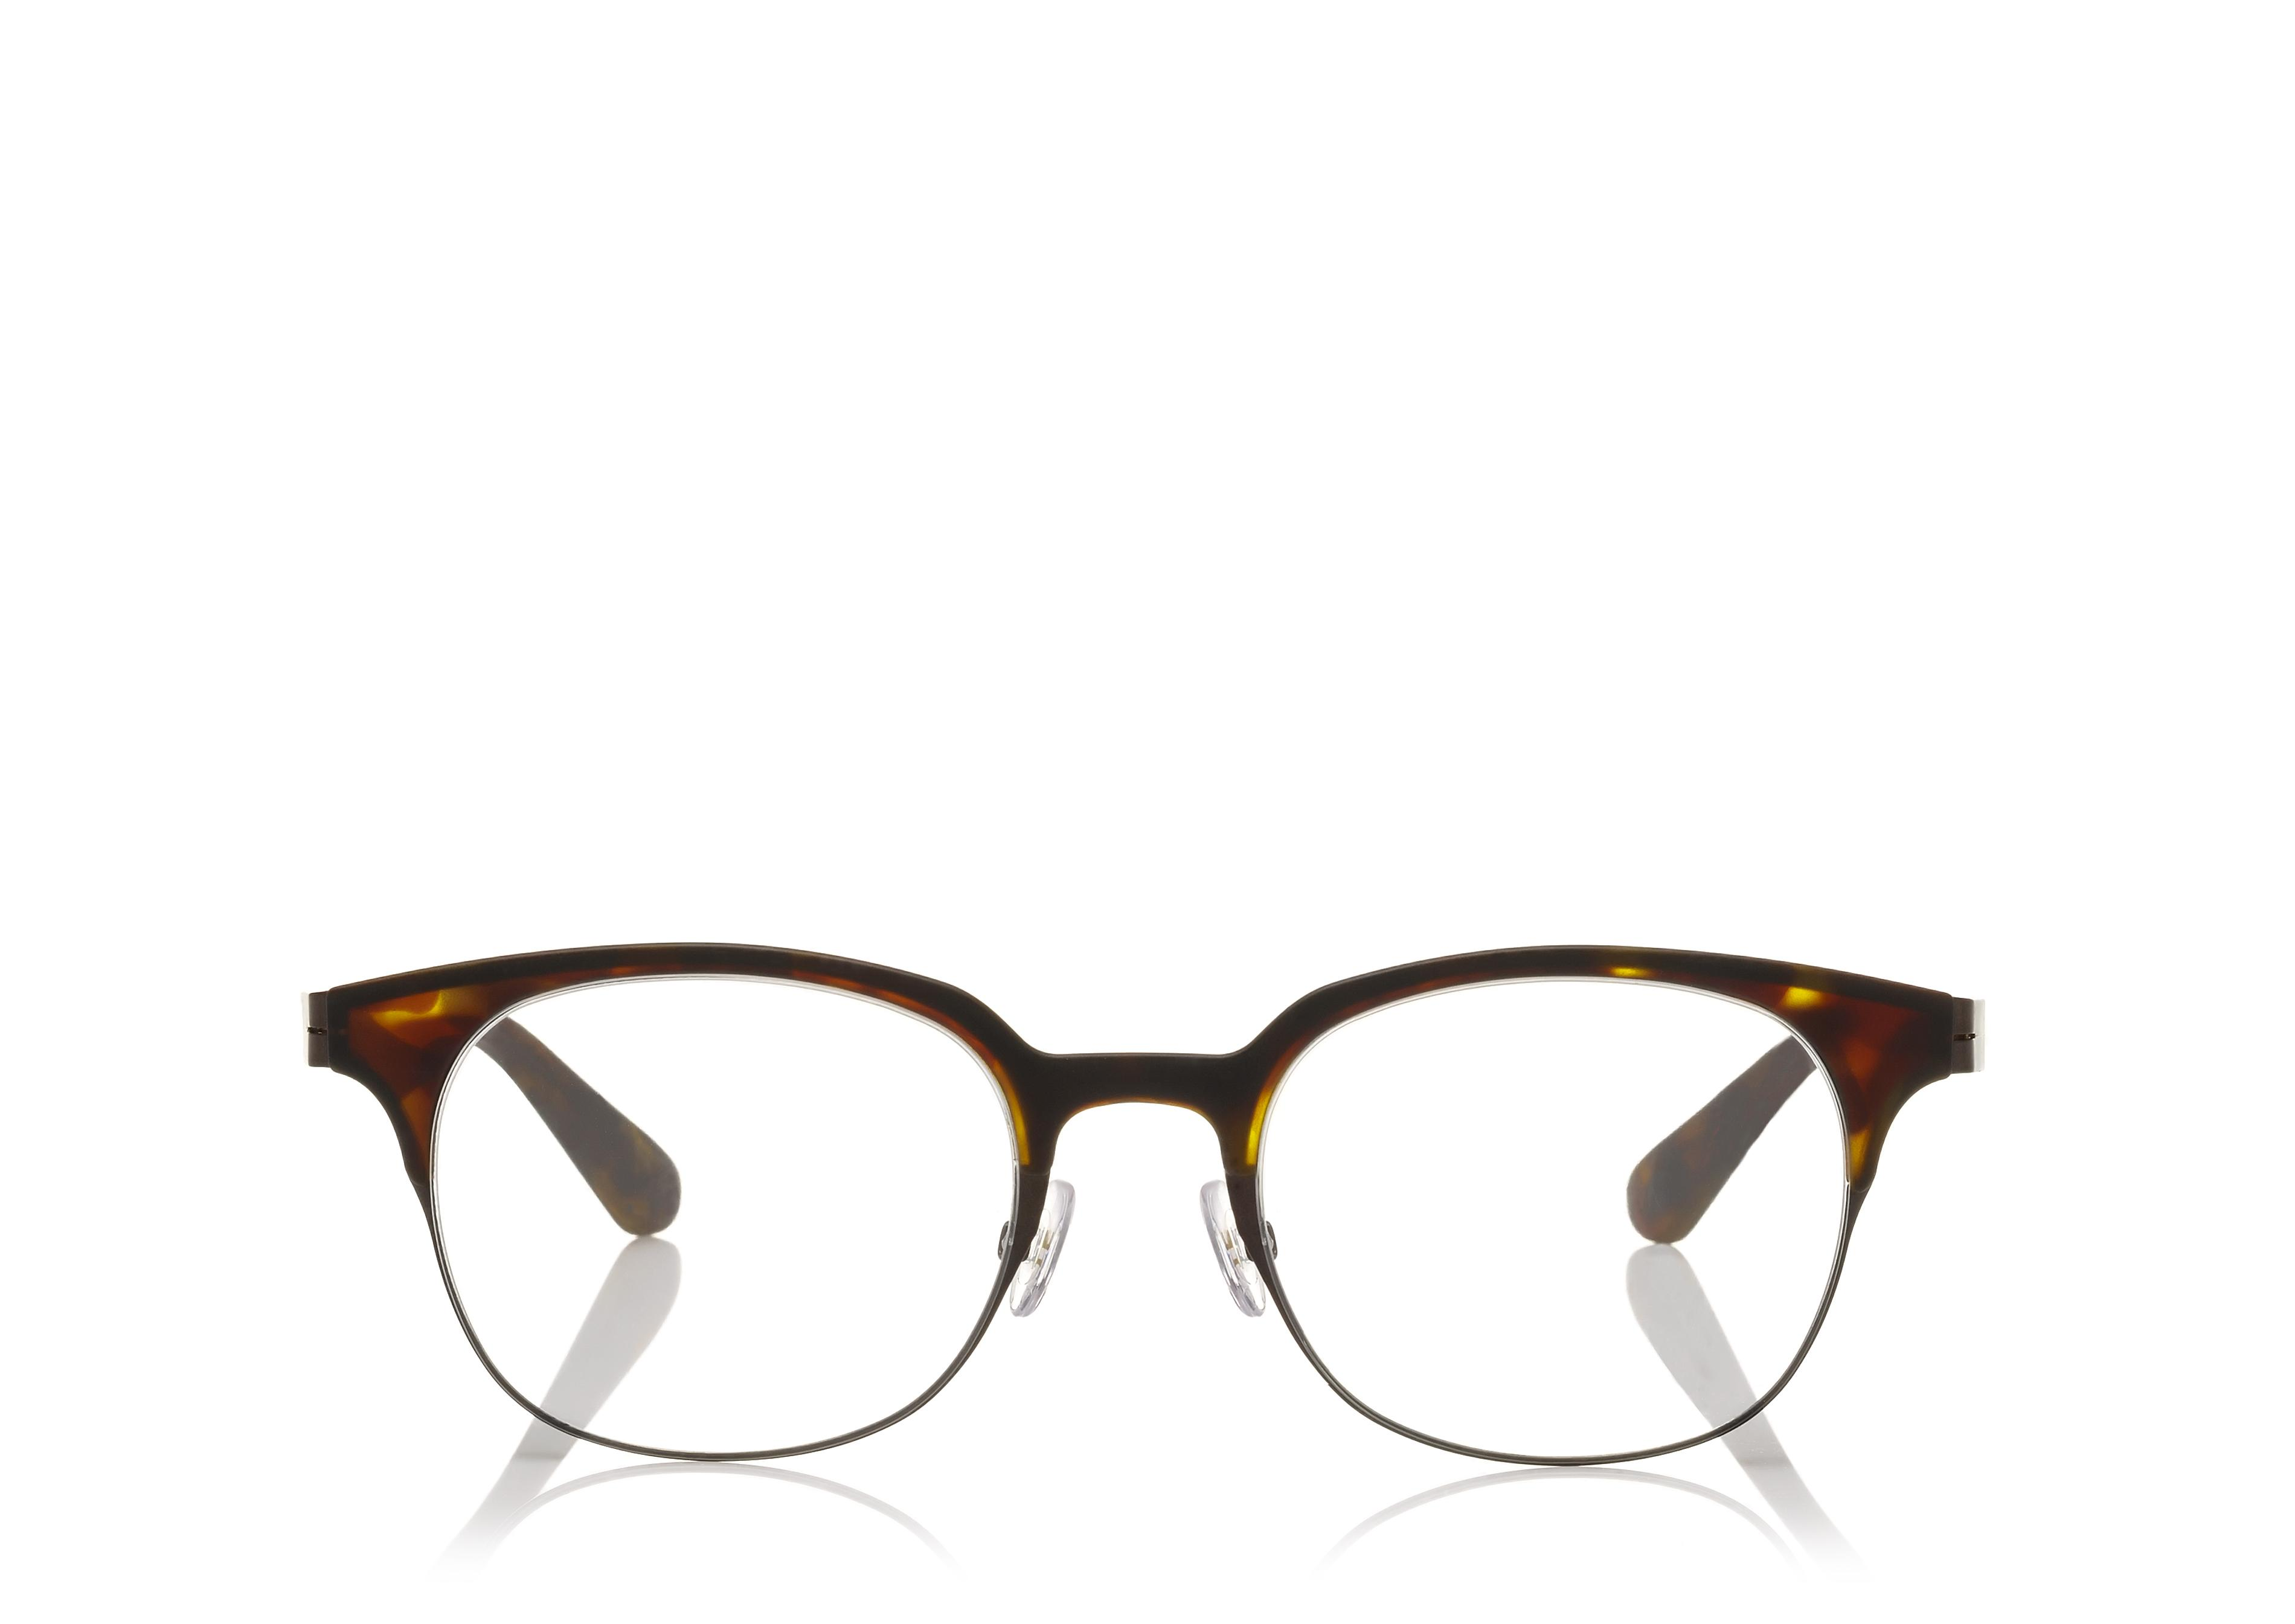 ROUNDED SQUARE OPTICAL FRAME A thumbnail